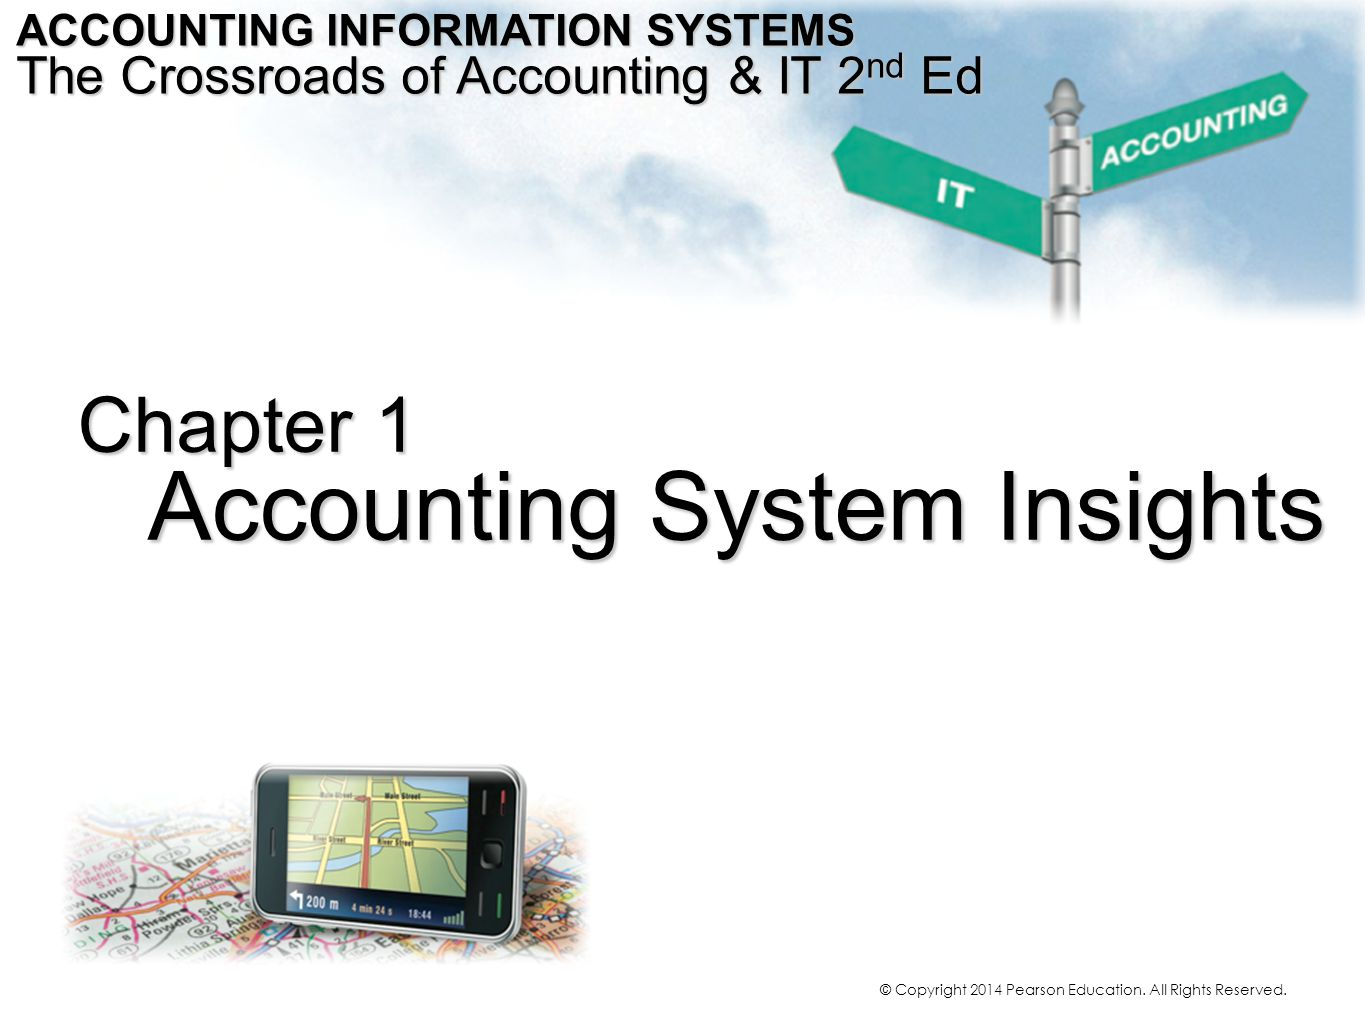 Accounting System Insights